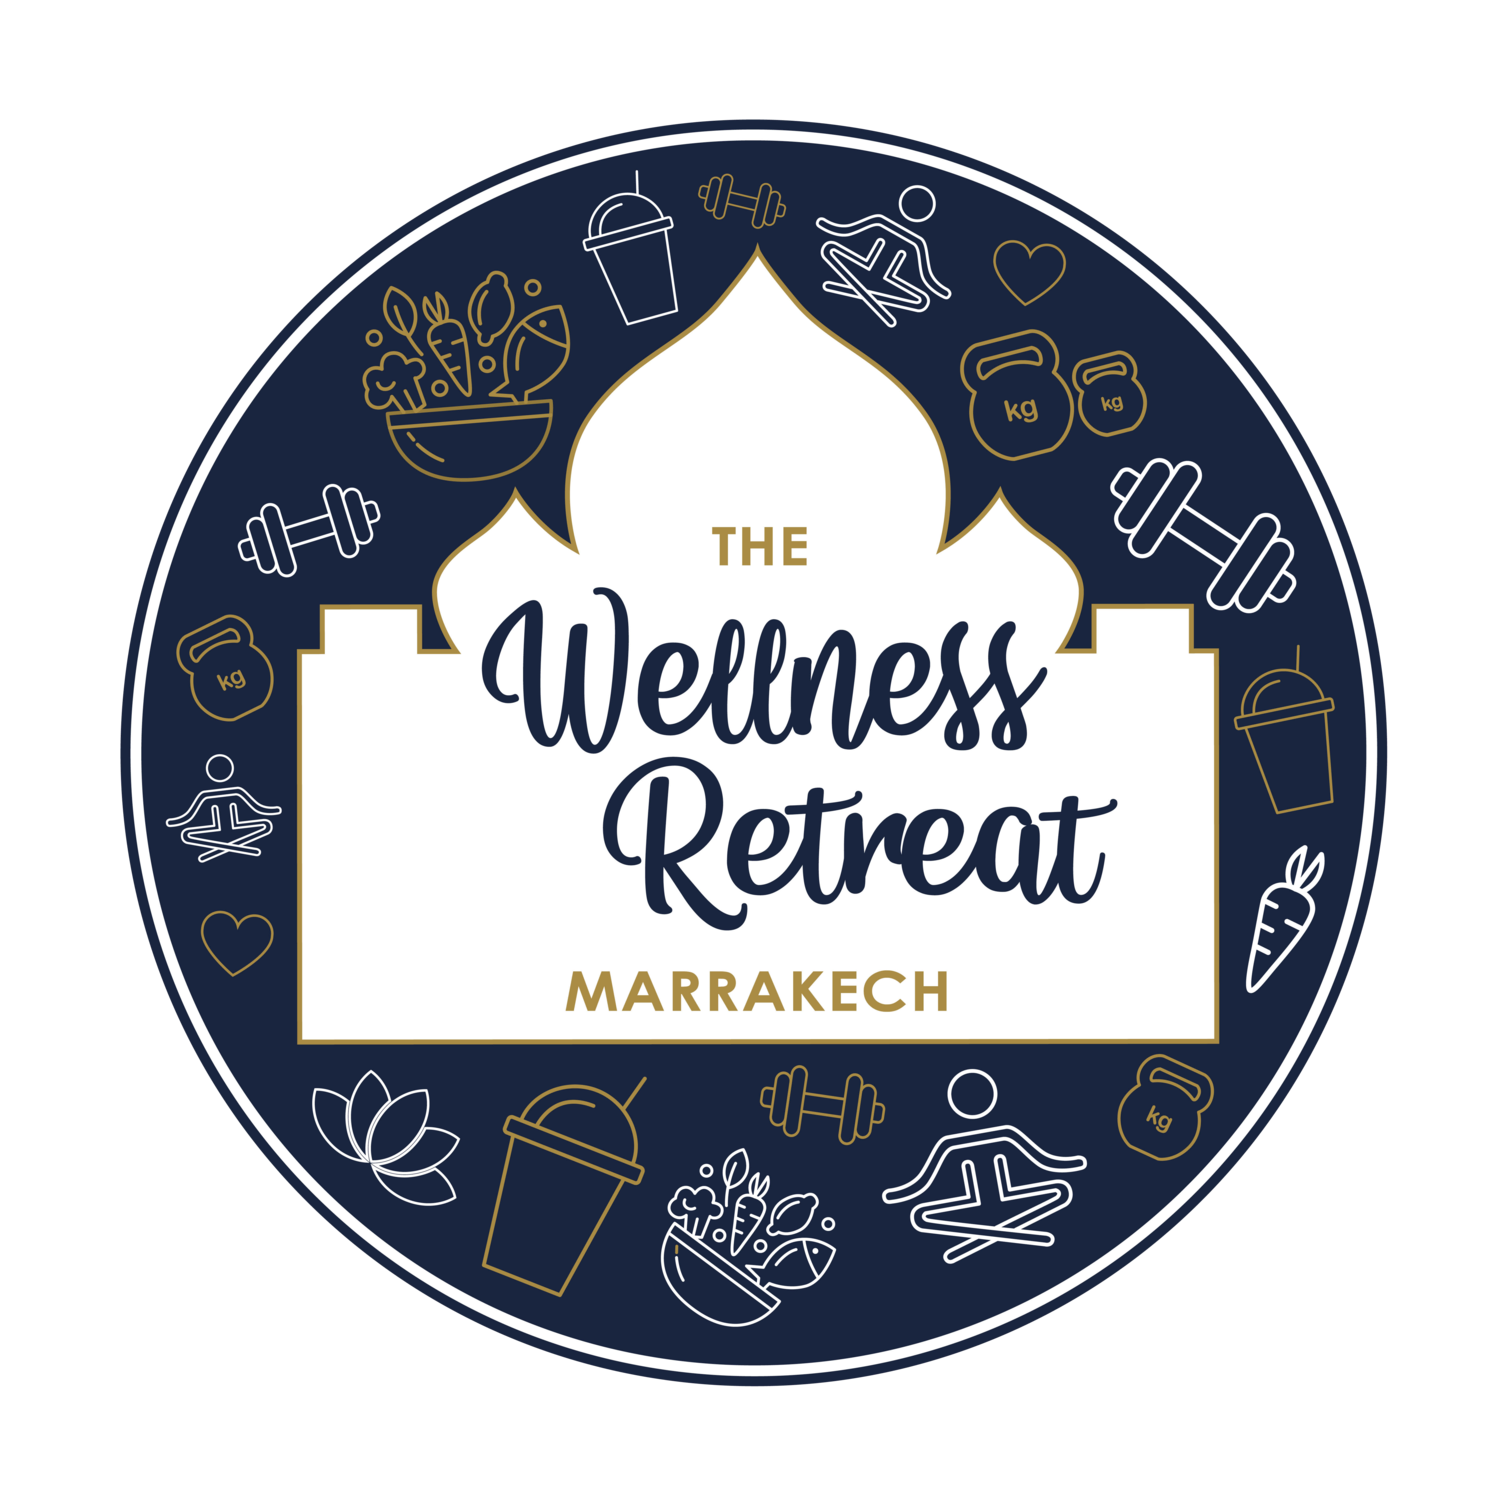 THE WELLNESS RETREAT MARRAKECH